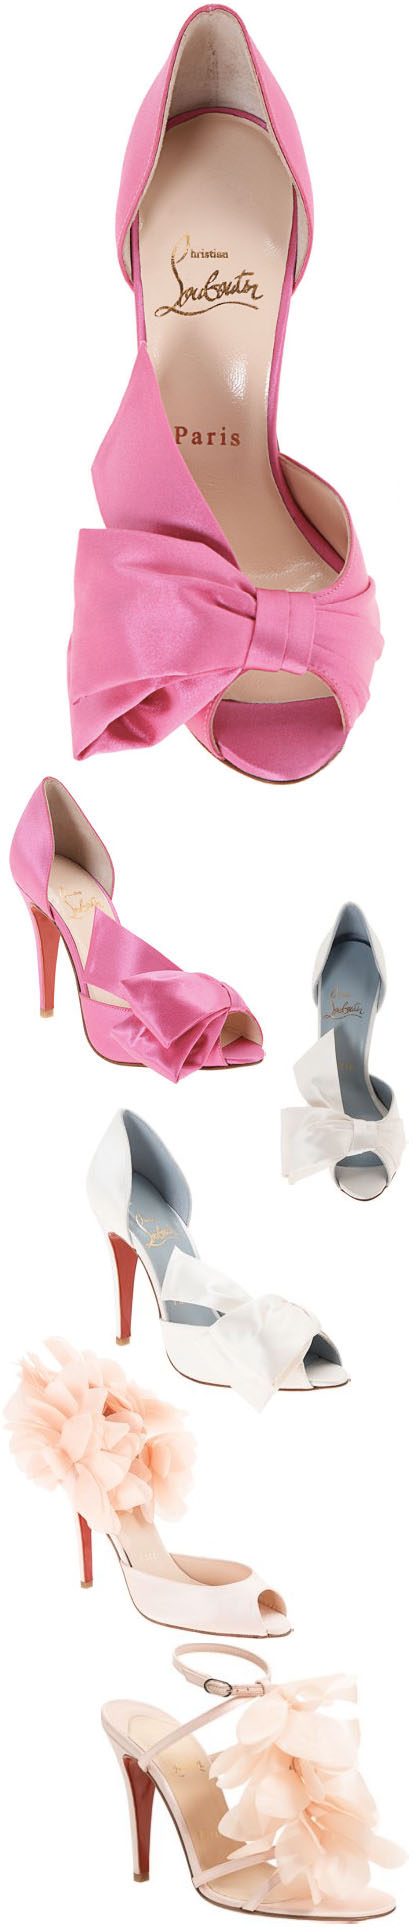 Christian Louboutin spring wedding shoes from Barneys.com